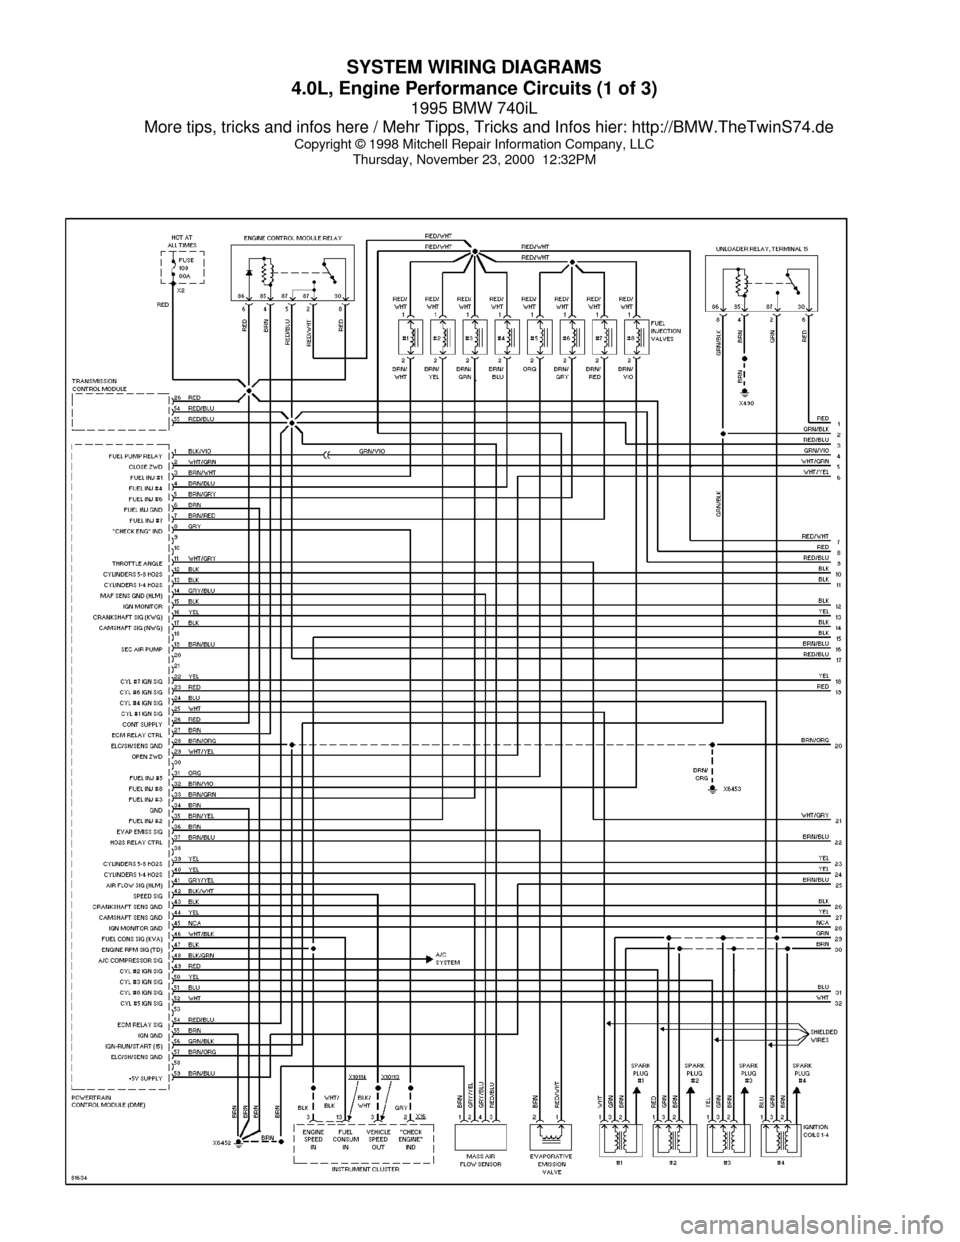 1998 Bmw 750il Wiring Diagram Best Electrical Schematic Ipac 740il 29 Images Engine 1991